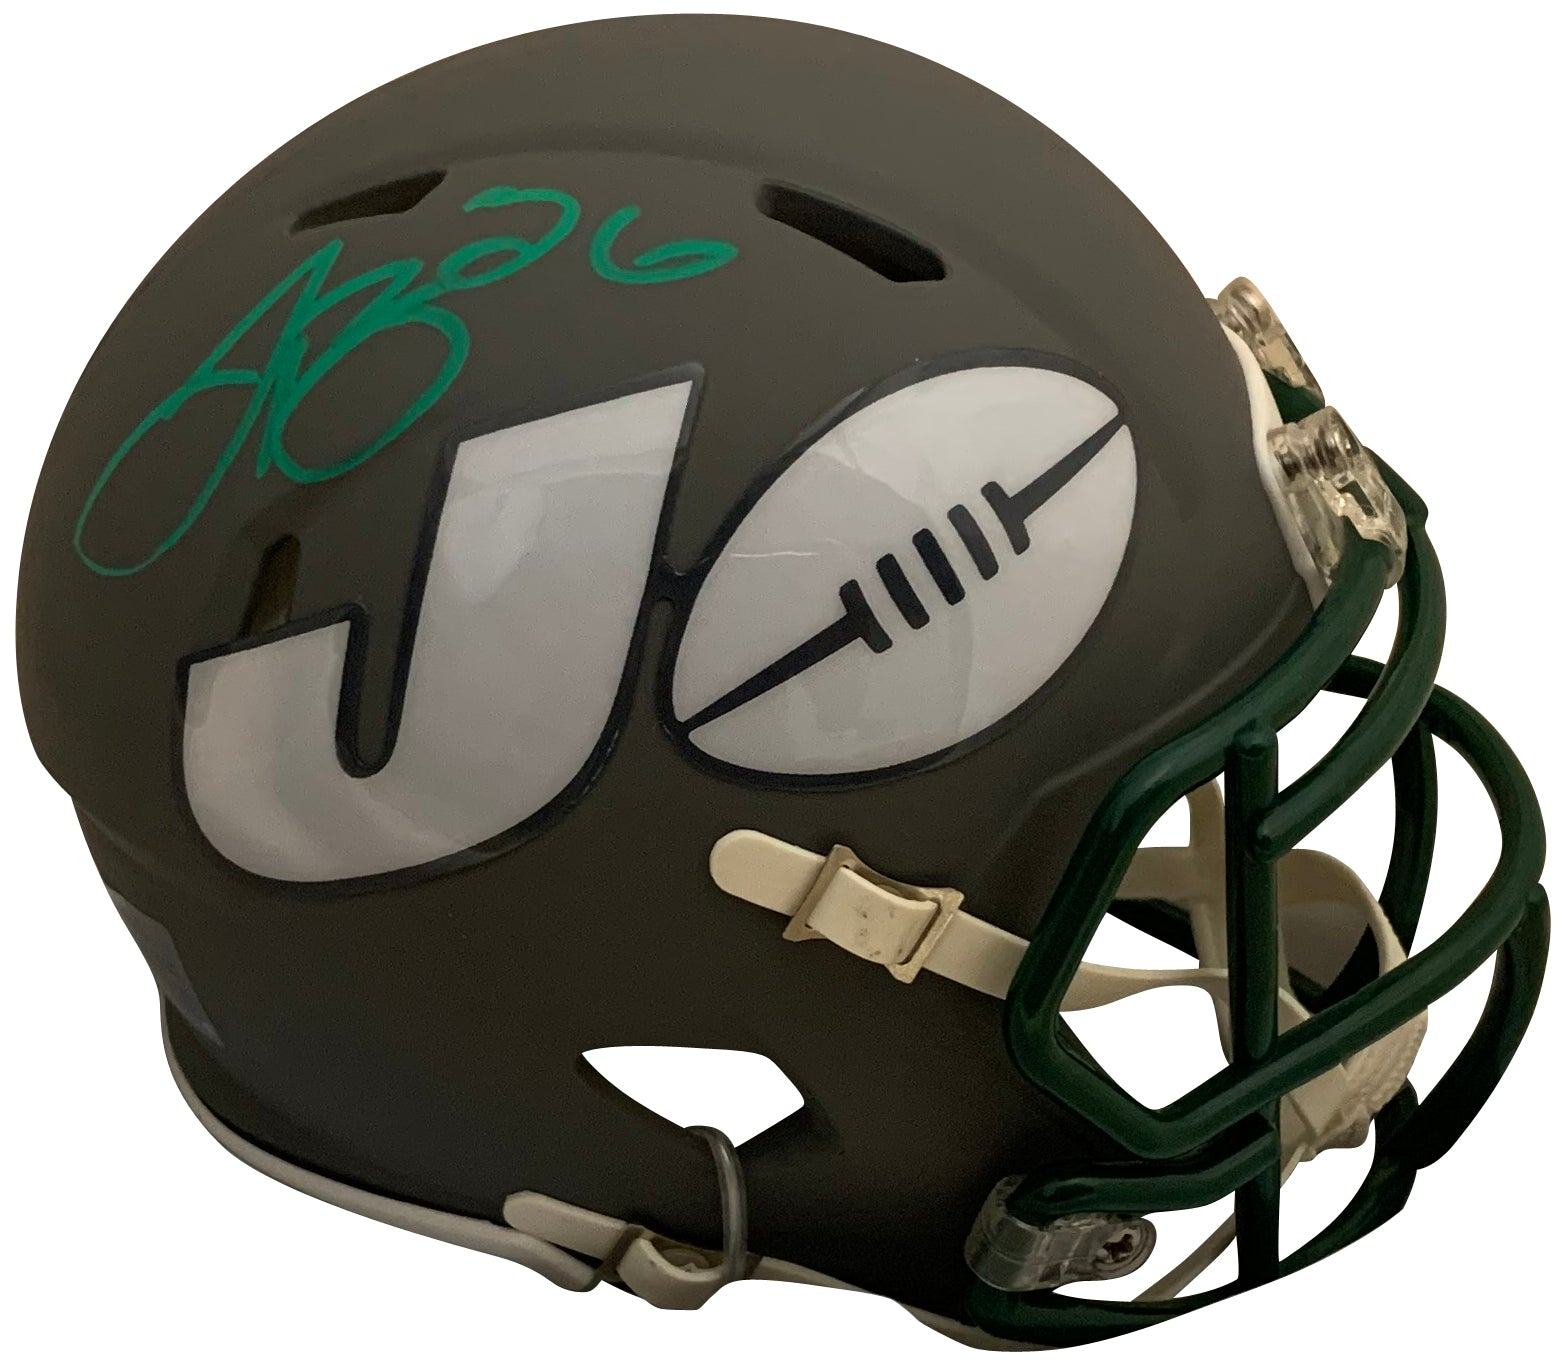 Le'Veon Bell Autographed New York Jets Signed NFL AMP Football Mini Helmet JSA COA-Powers Sports Memorabilia